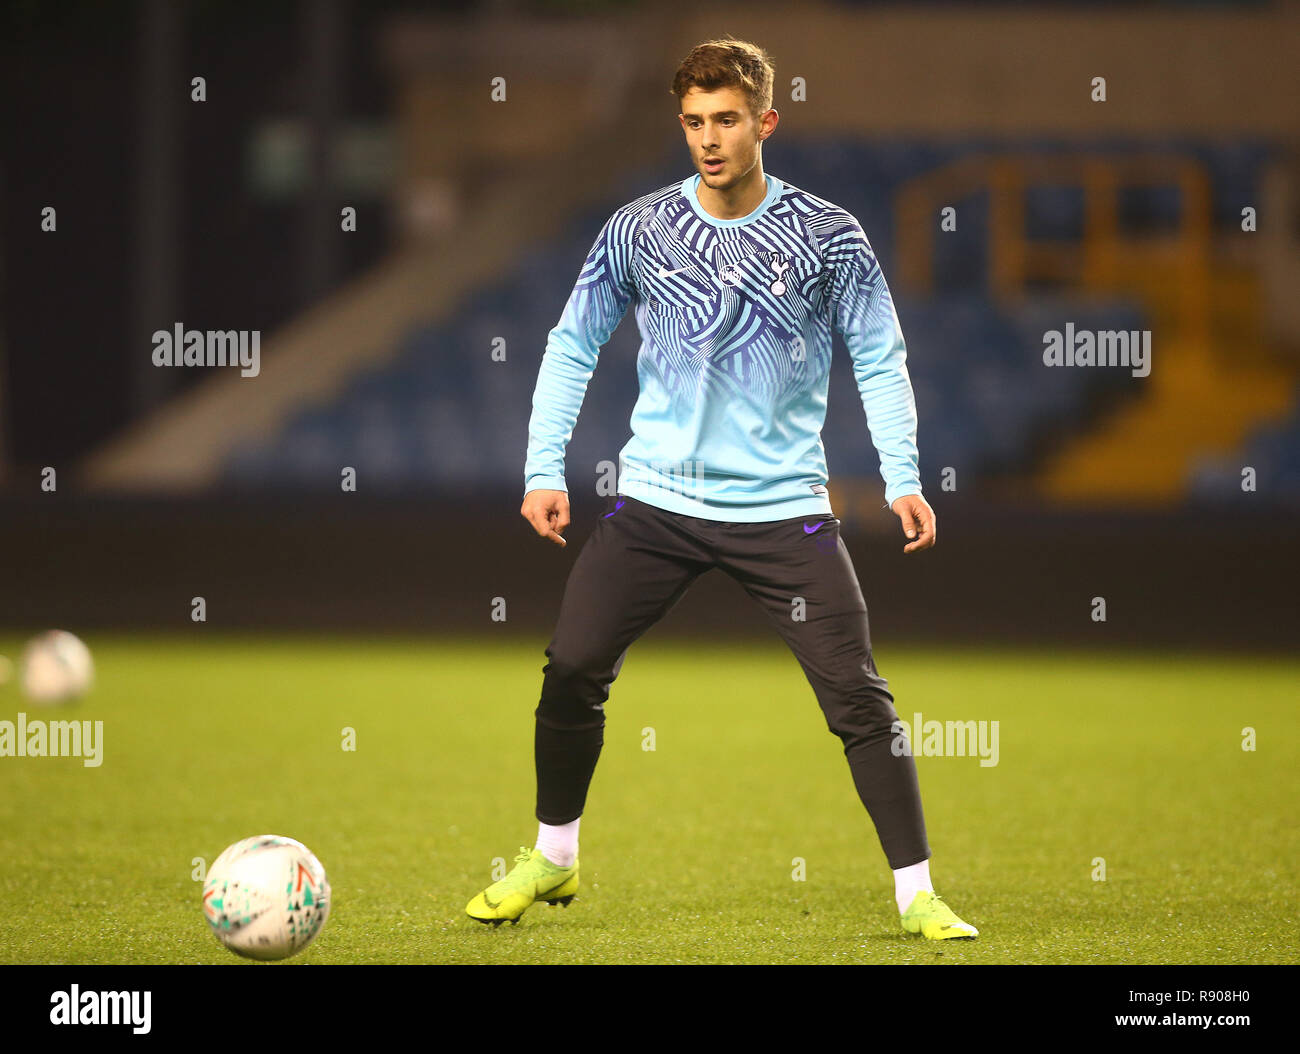 London Uk 17 December 2018 Maurizio Pochettino Son Of Tottenham Hotspur Manager Mauricio Pochettino During Fa Youth Cup Third Round Match Between Stock Photo Alamy